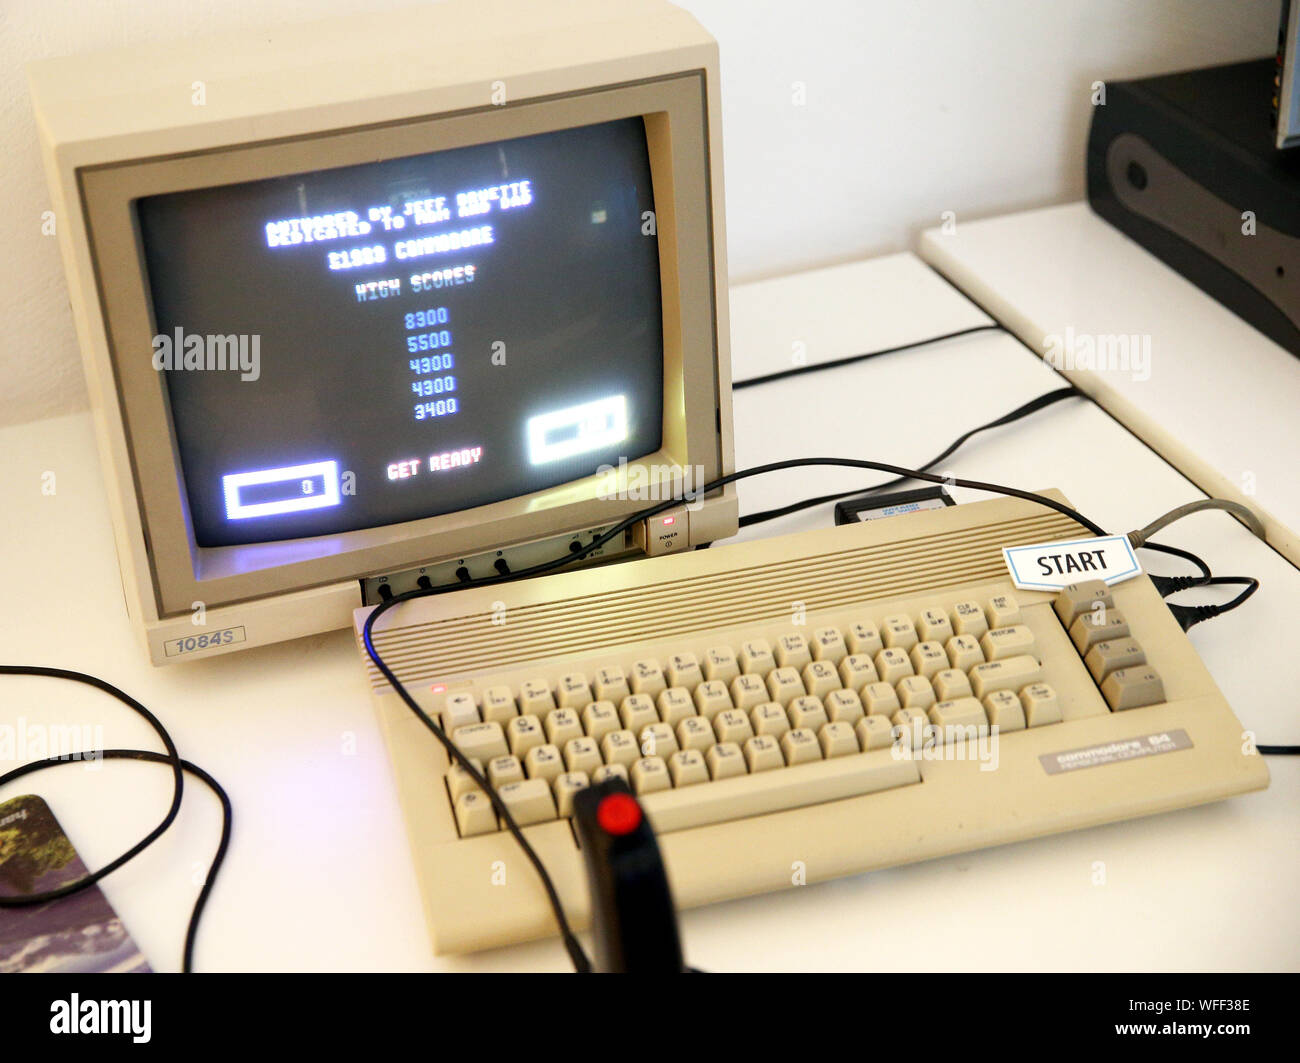 Gameconsoles Stock Photos & Gameconsoles Stock Images - Alamy